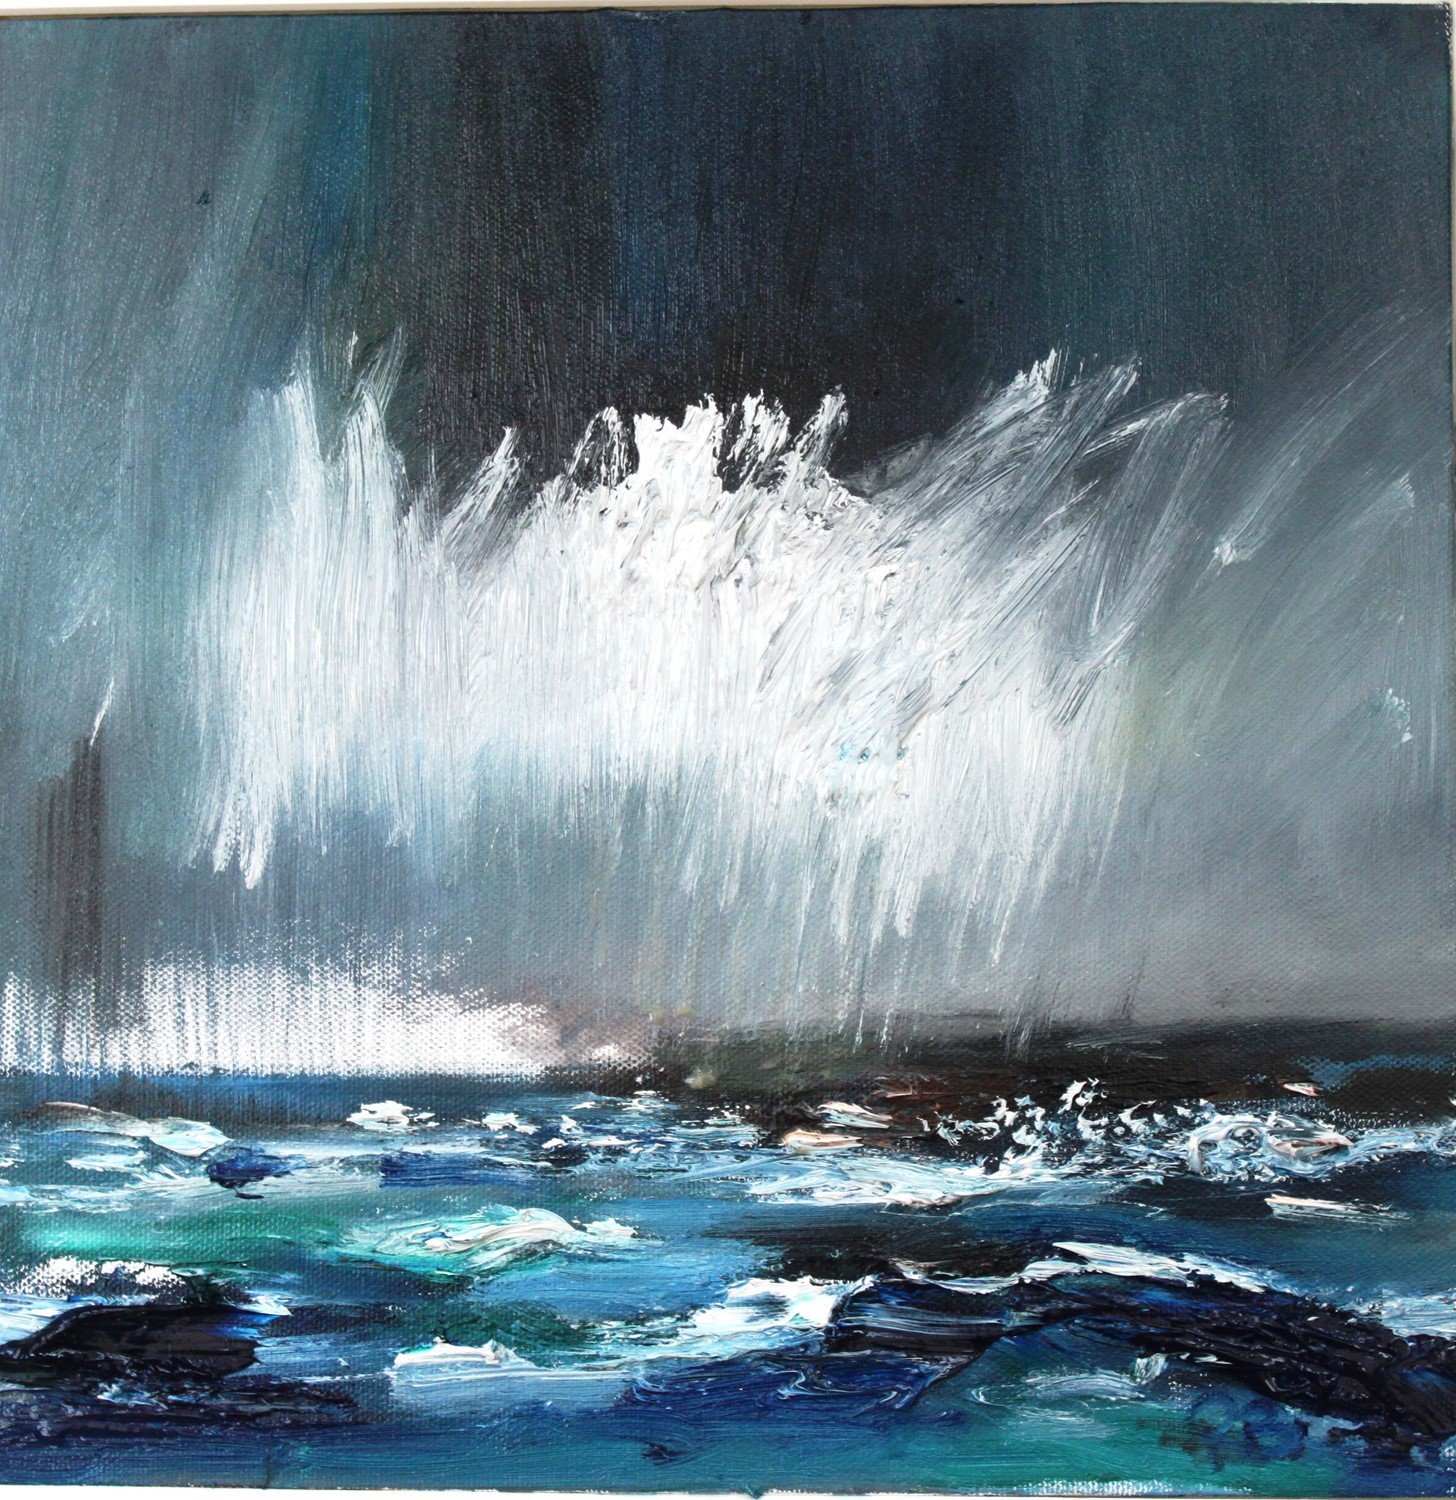 'Storm at Sea' by artist Rosanne Barr